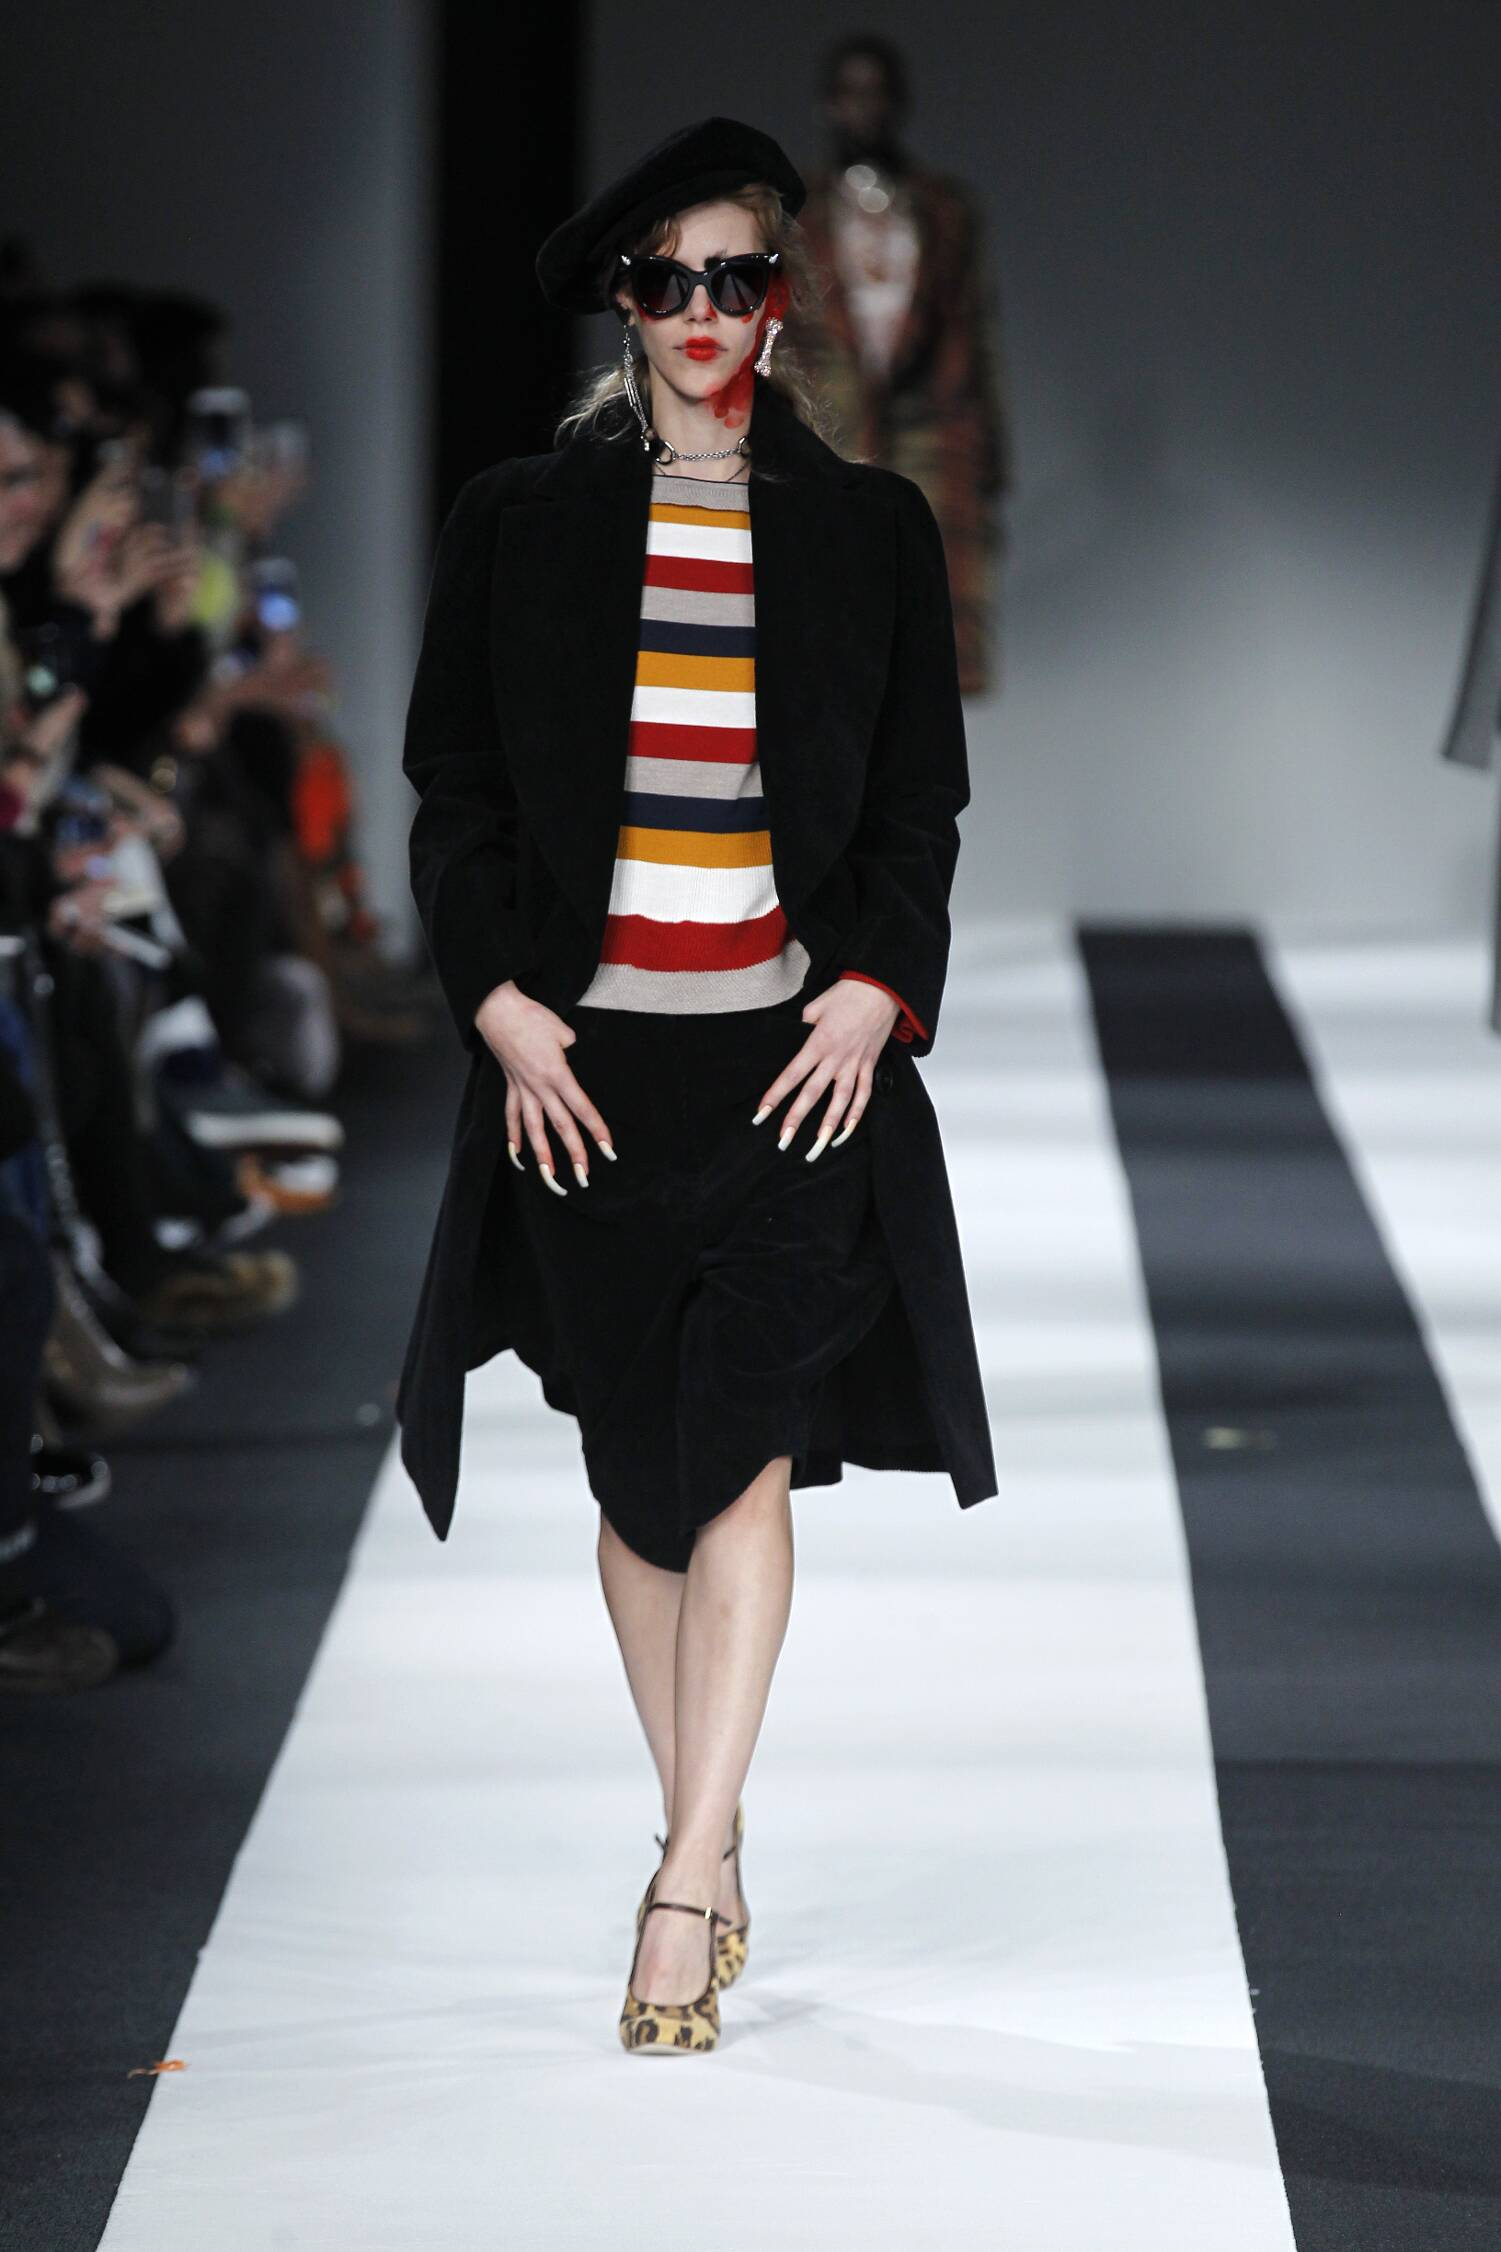 Winter Trends 2015 Vivienne Westwood Red Label Collection